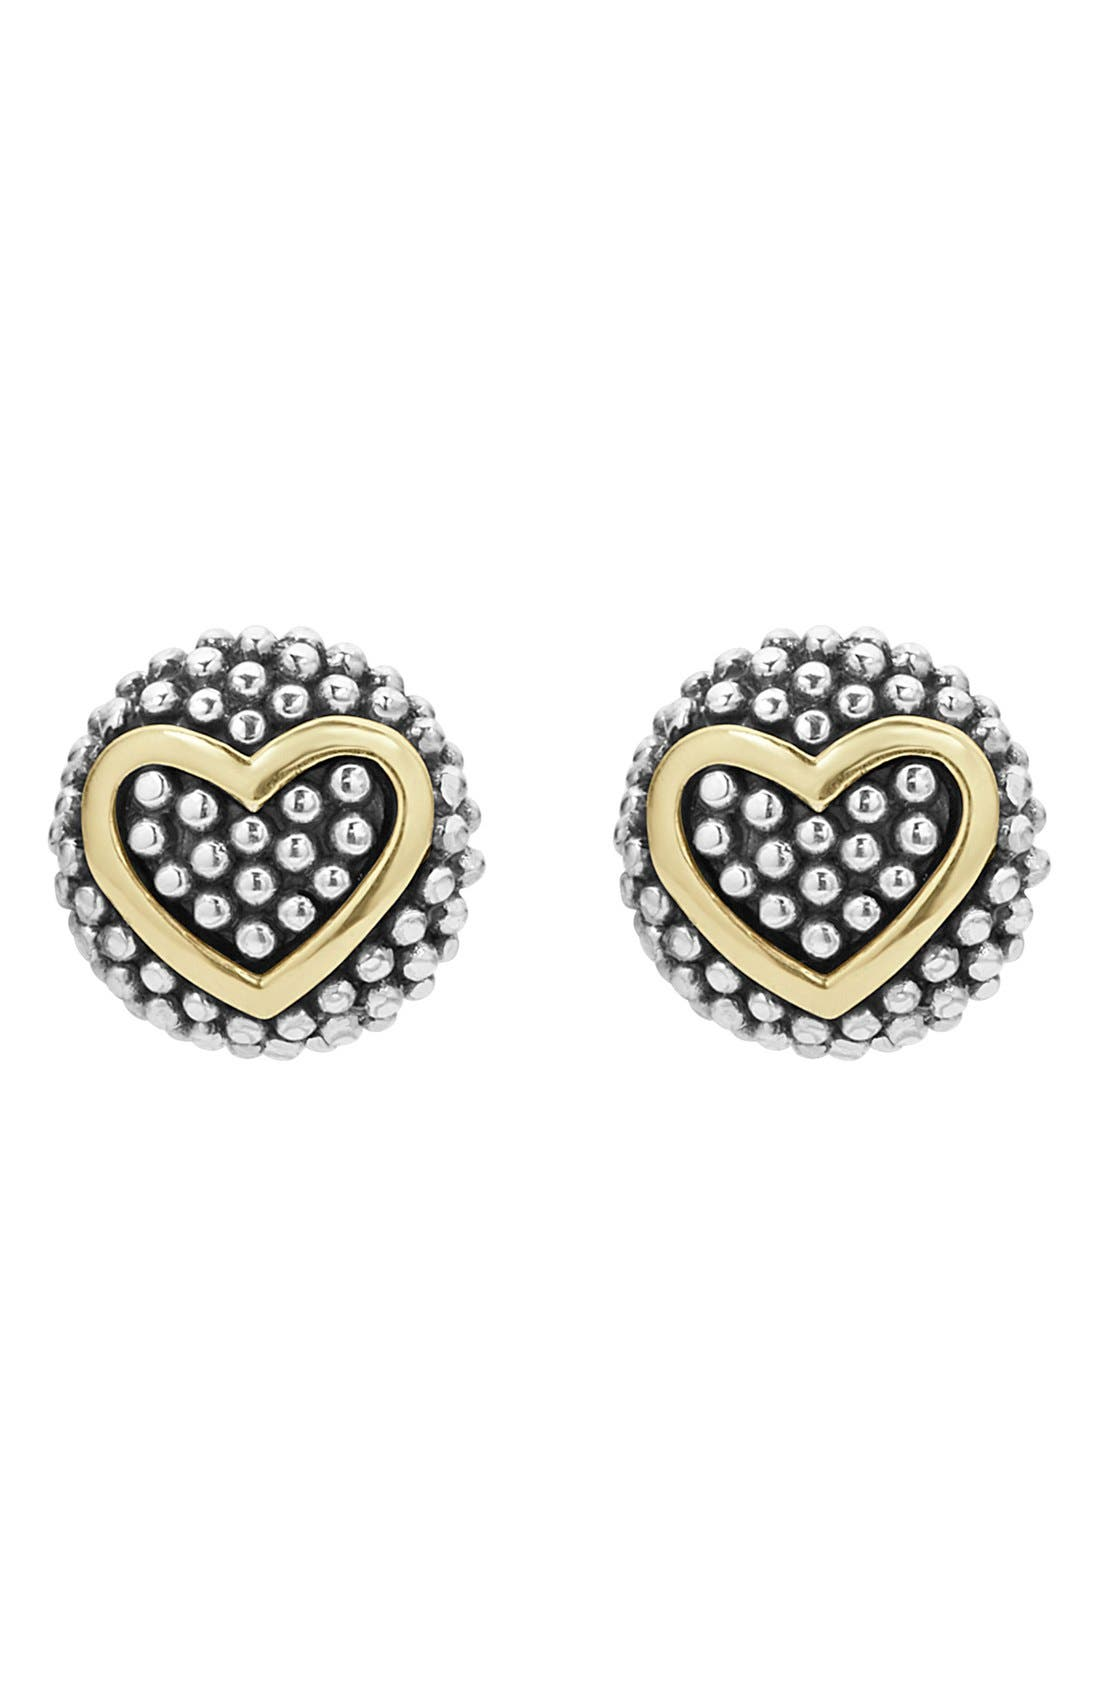 LAGOS 'Caviar' Heart Stud Earrings